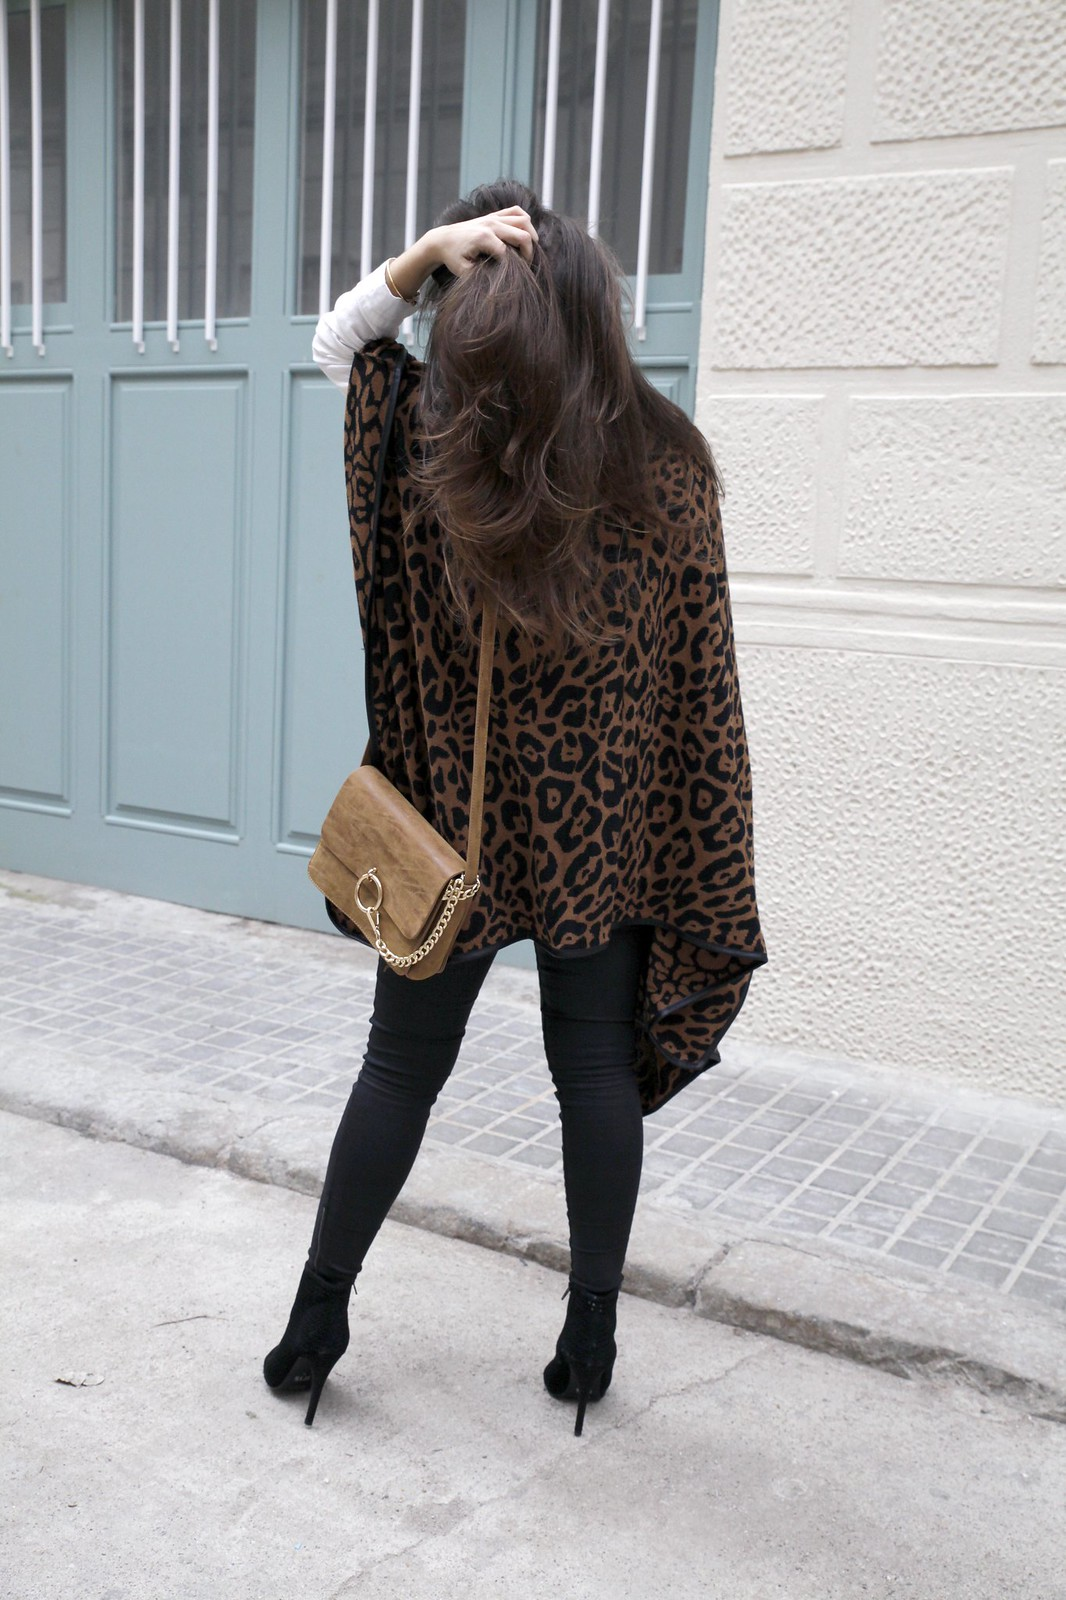 016_leopard_casual_look_with_ruga_theguestgirl_influencer_fashion_portugal_barcelona